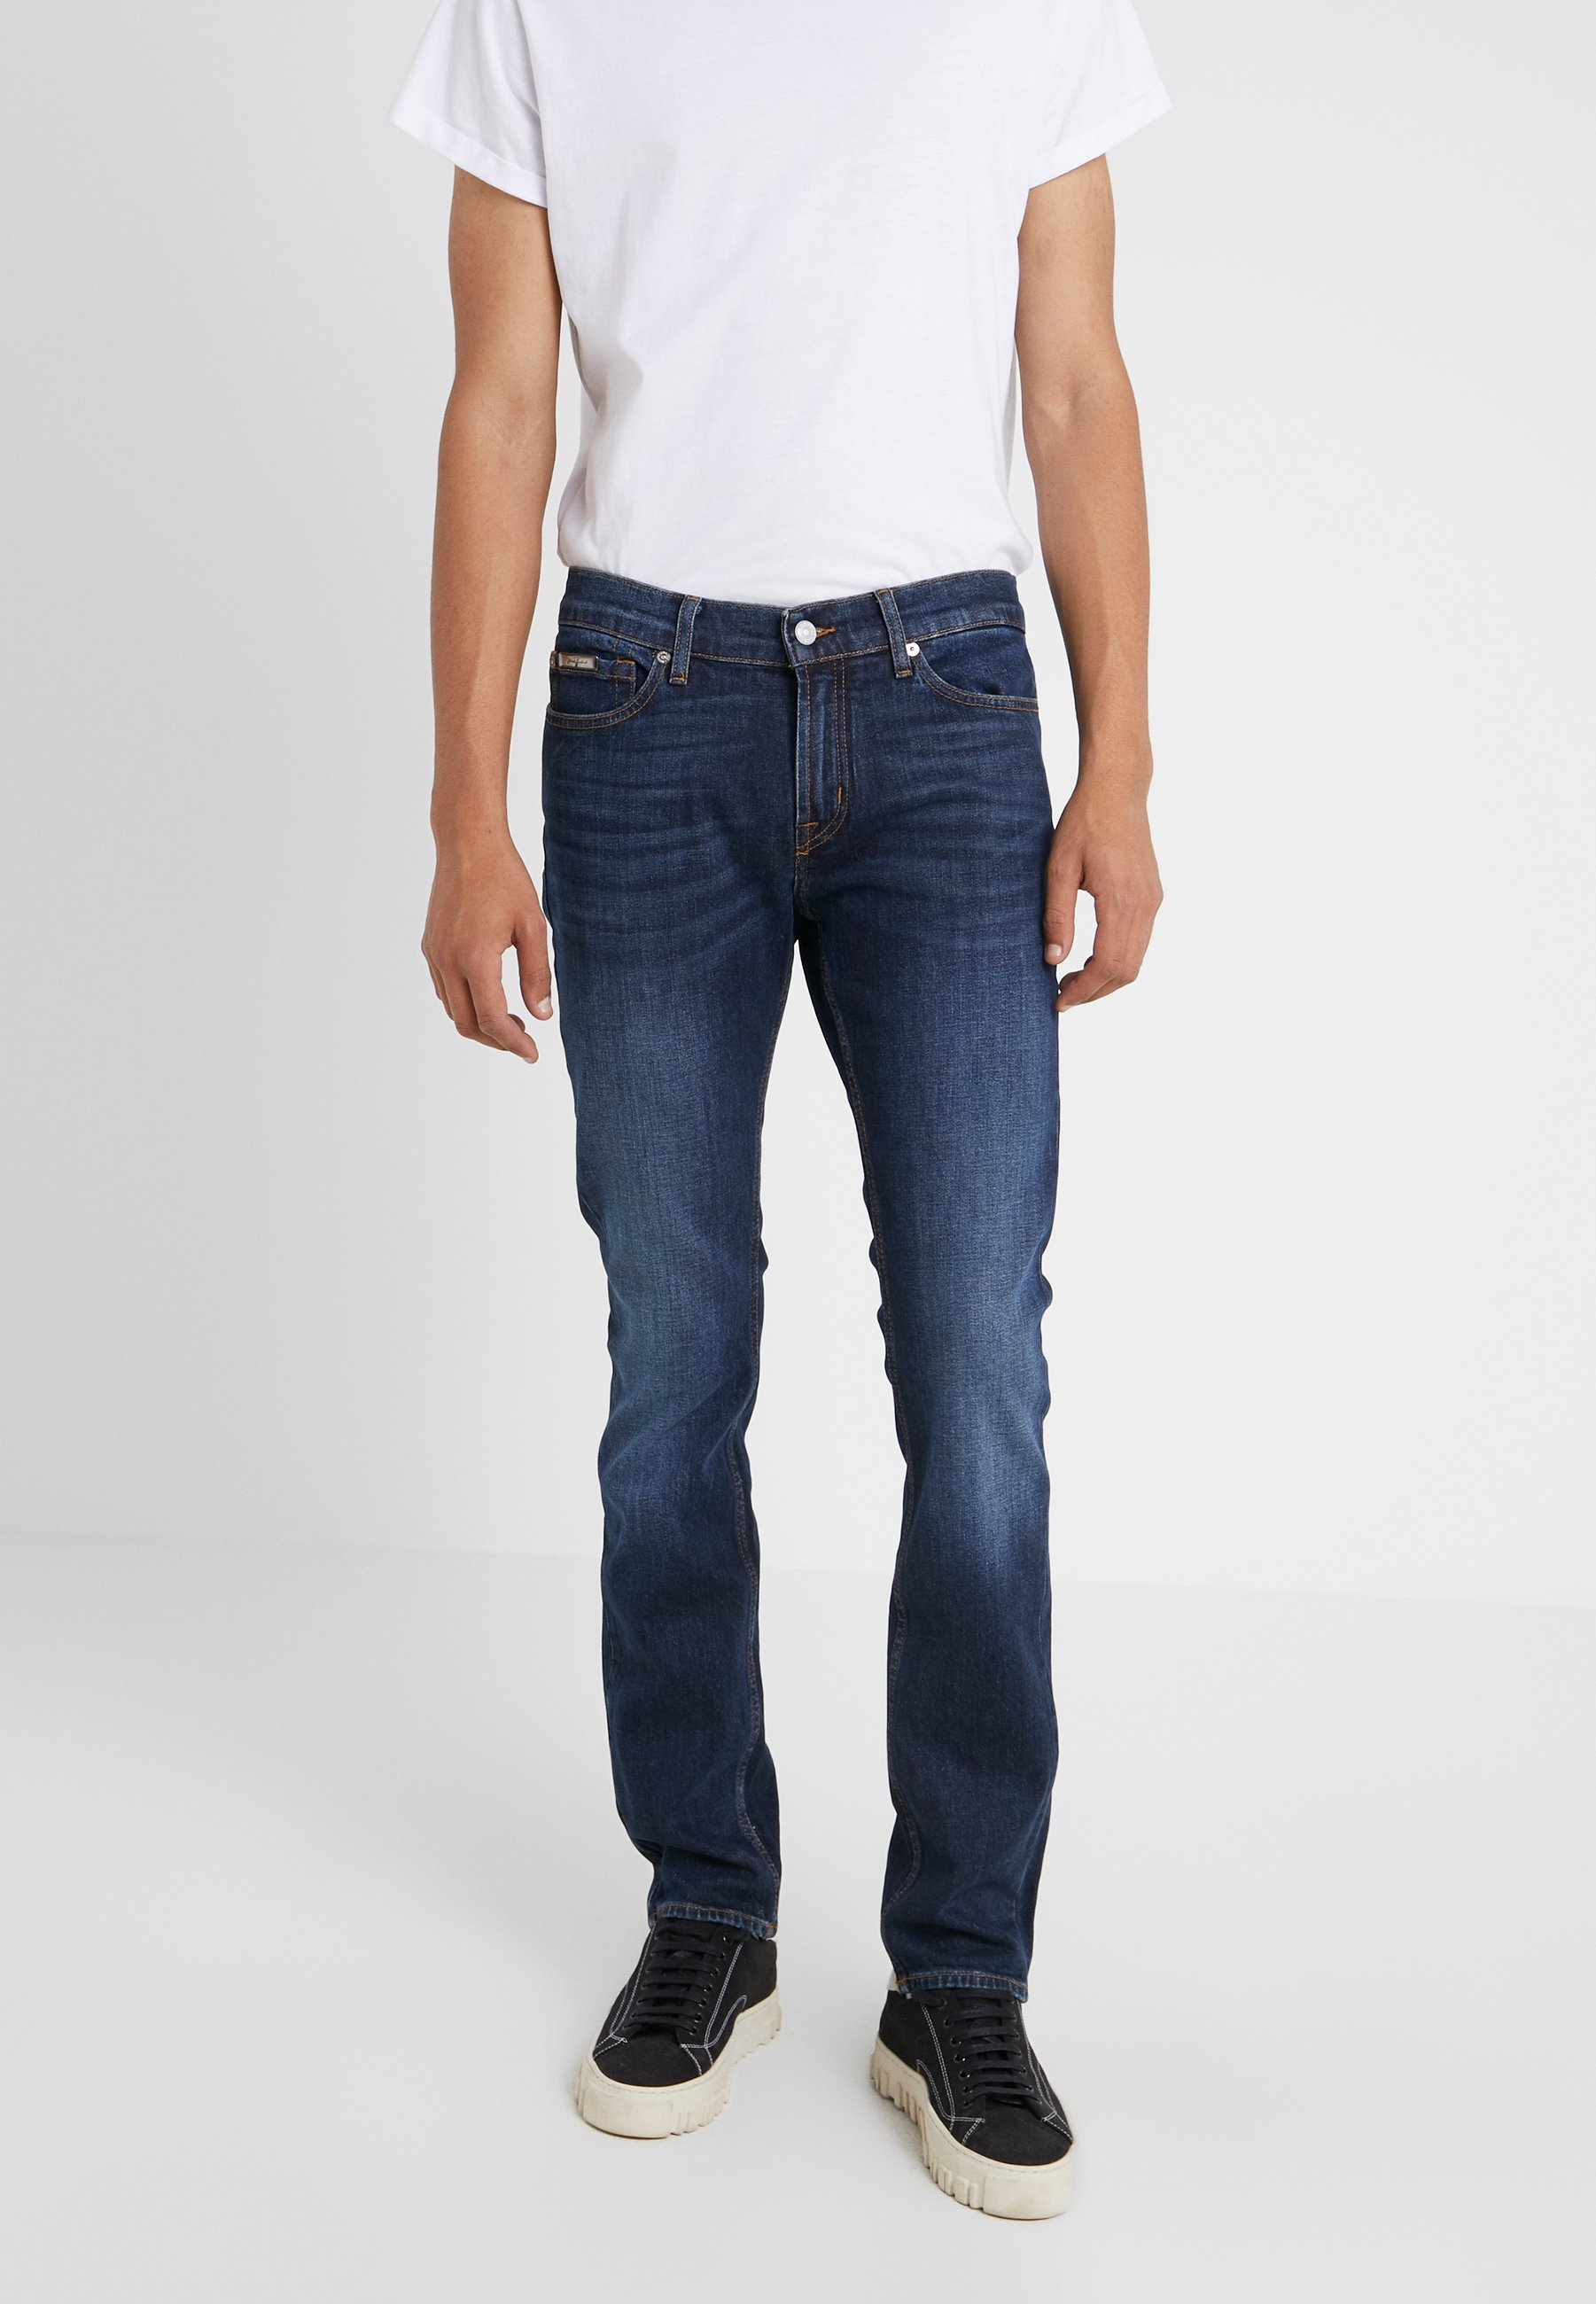 Special Blue Slim Ronnie Edition Dark All PluckyJean 7 Mankind For oWrxeBCd